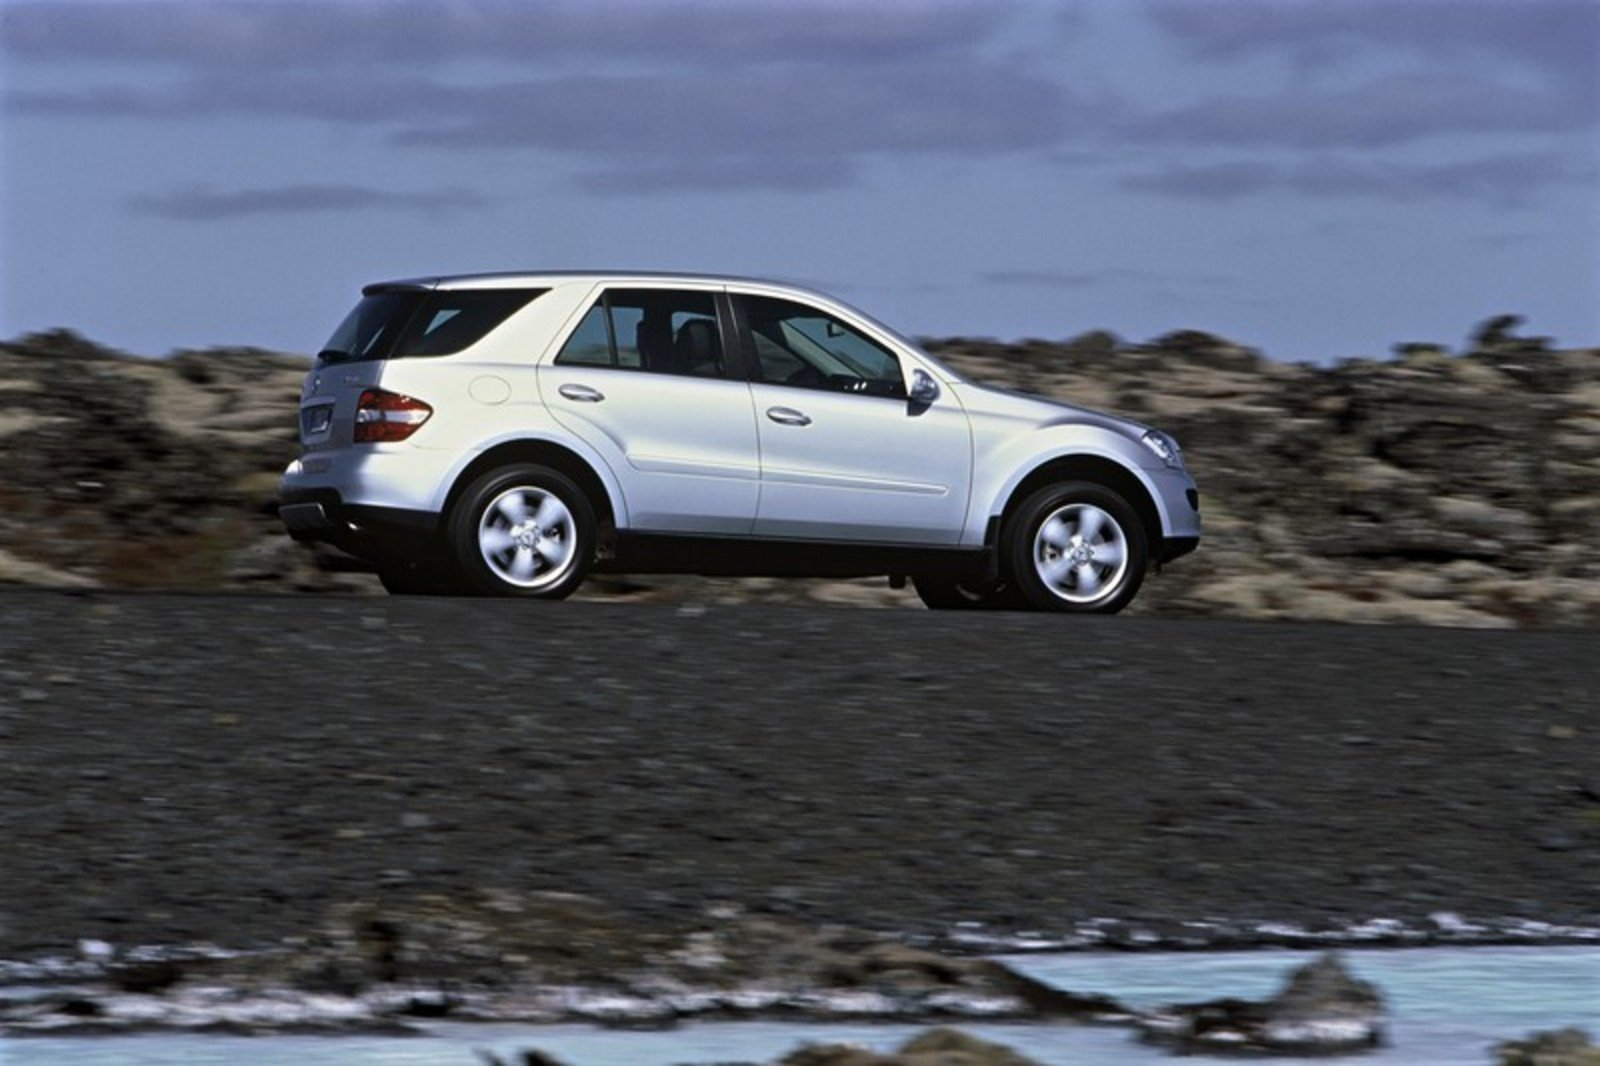 2007 mercedes ml 420 cdi 4matic picture 81241 car review top speed. Black Bedroom Furniture Sets. Home Design Ideas